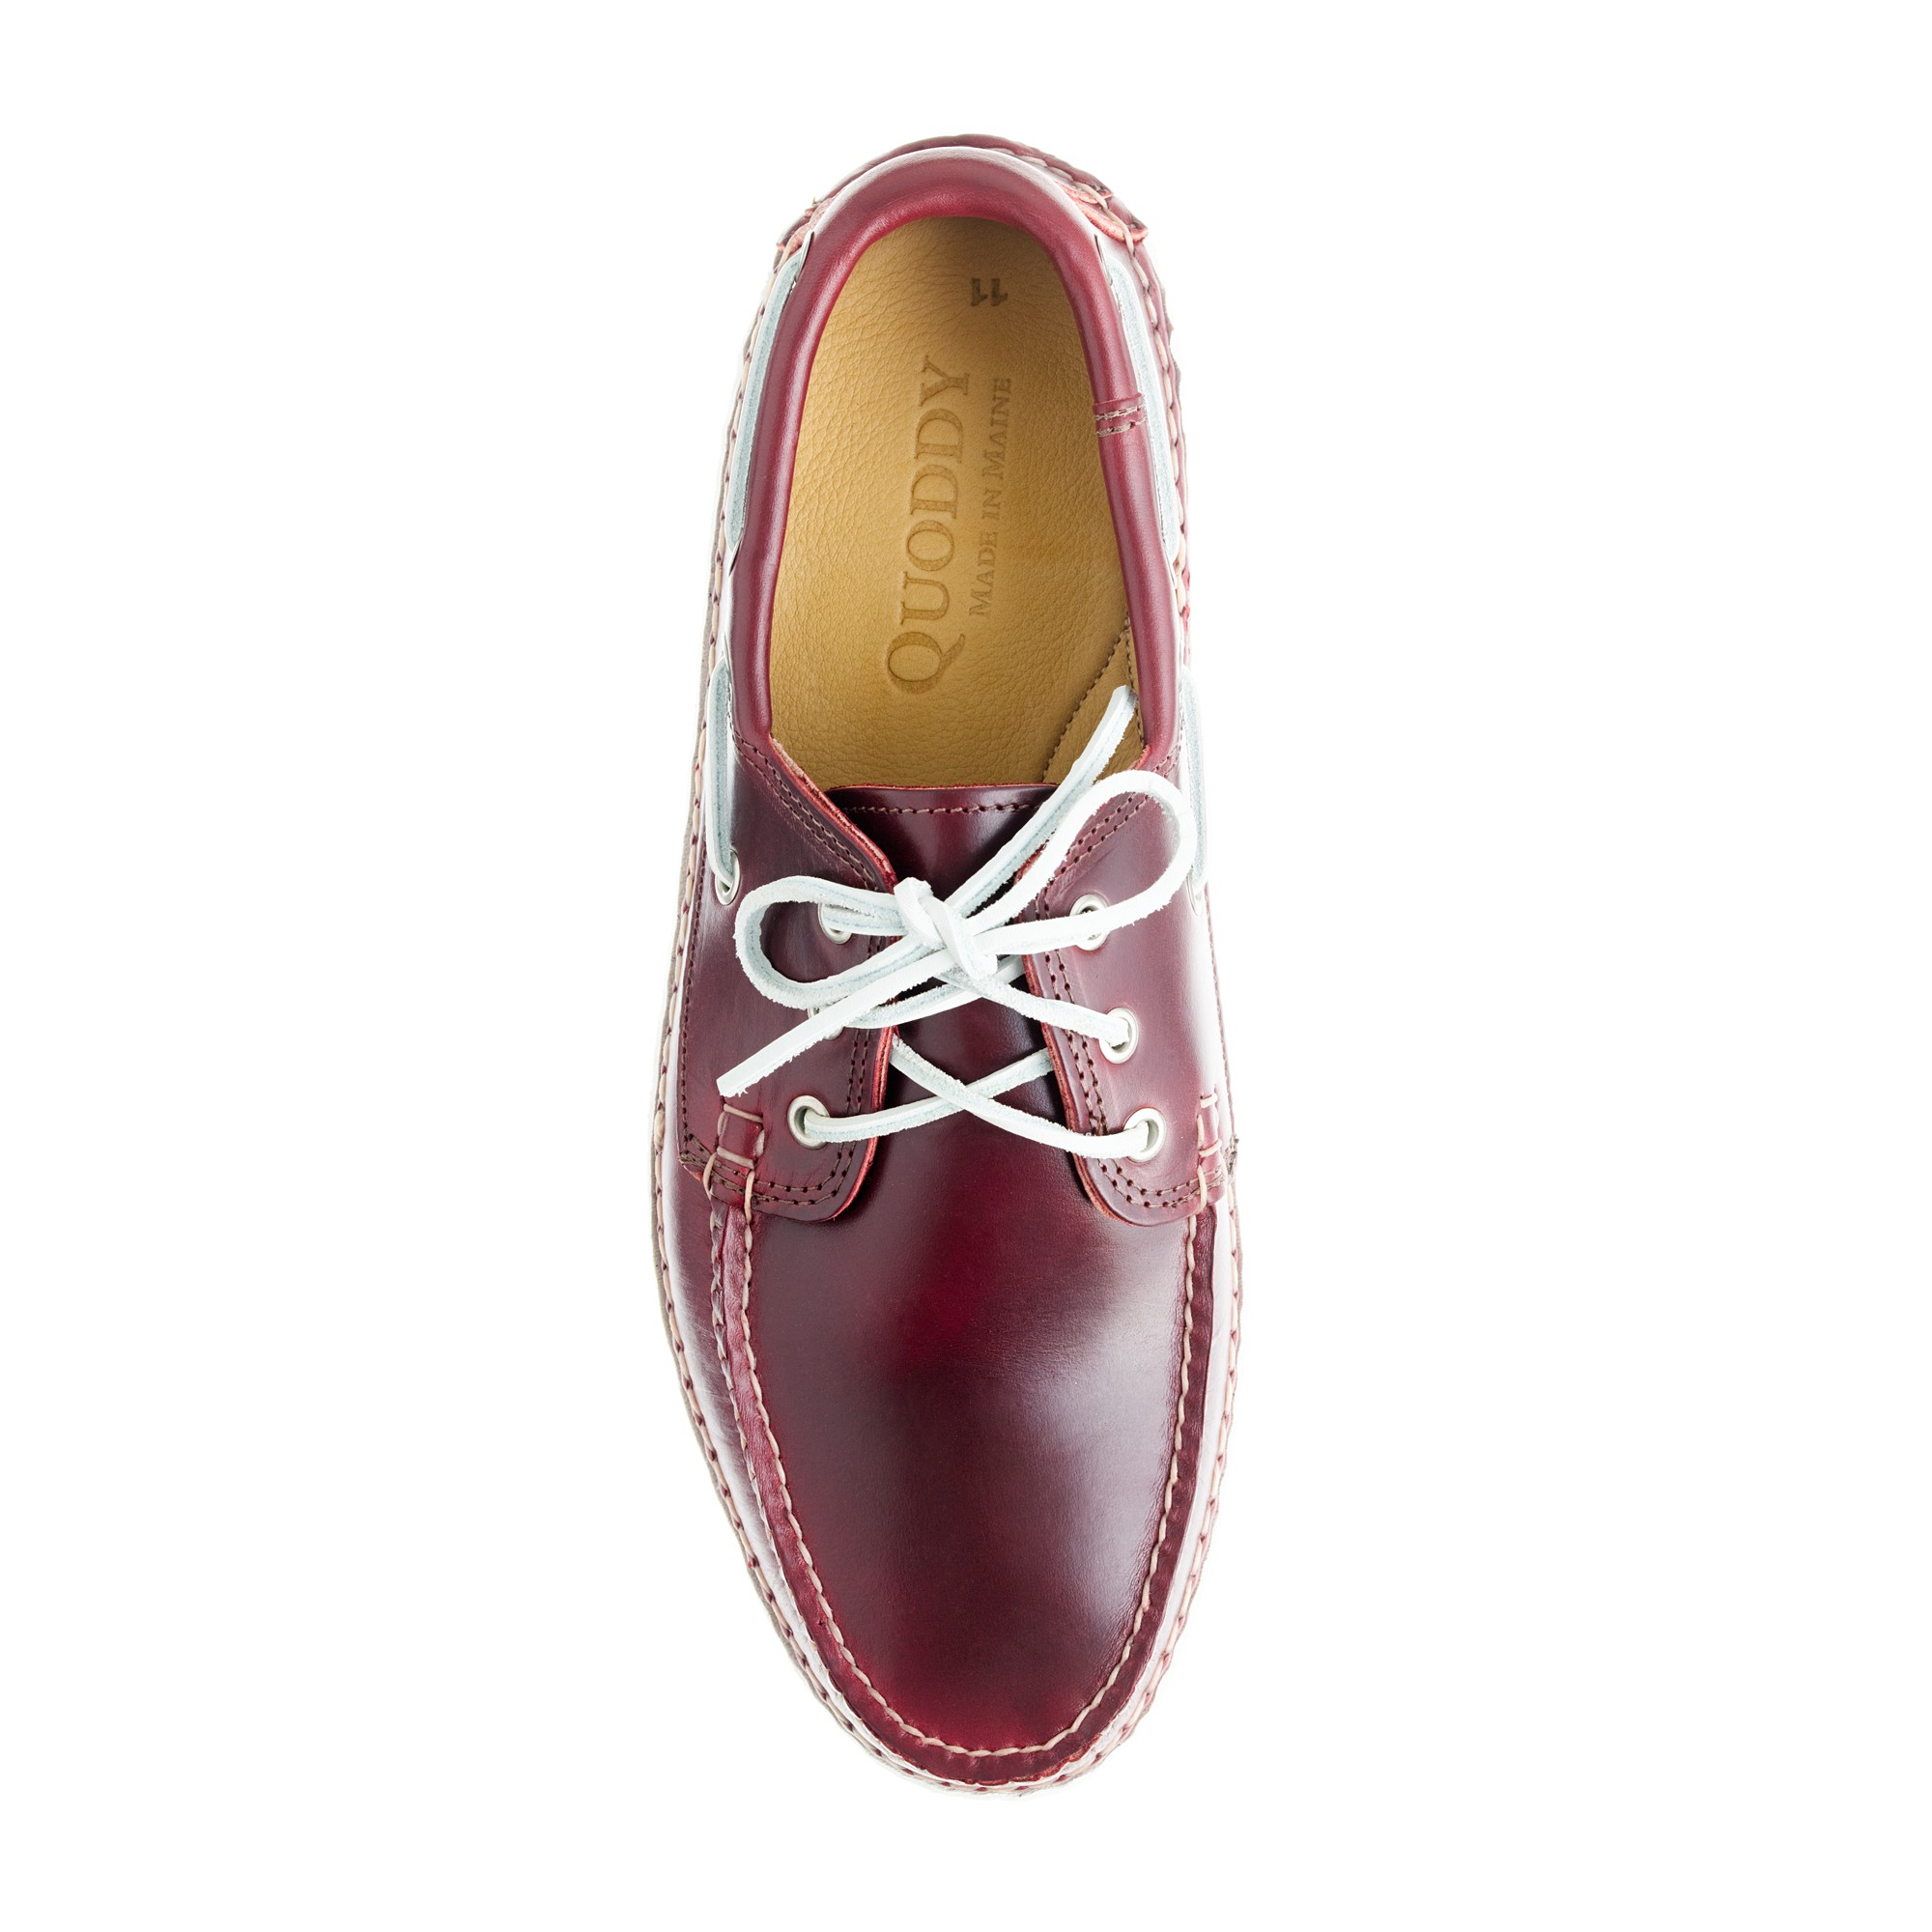 26fad219648 jcrew-red-mens-quoddy-for-jcrew-red-cavalier-boat-moccasins-product-1-2995579-902898985.jpeg